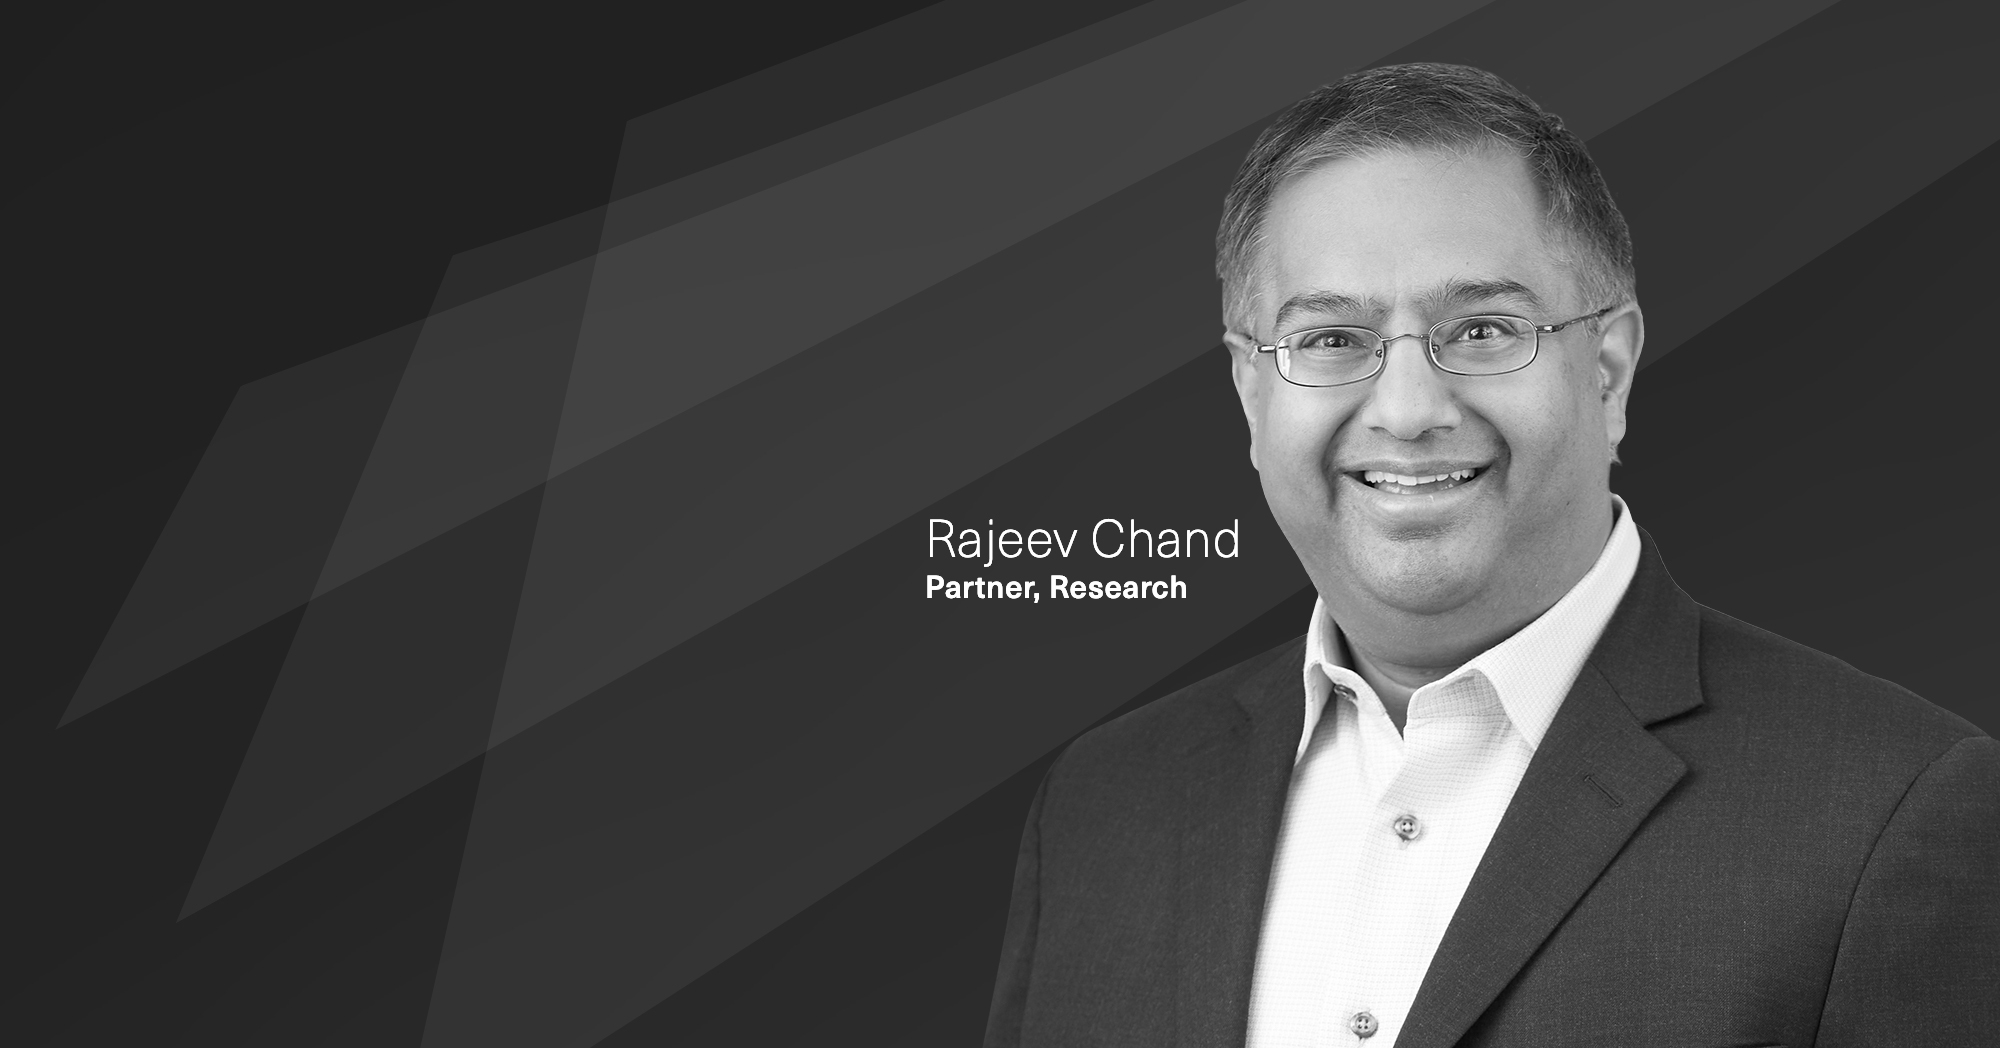 Wing Welcomes Rajeev Chand